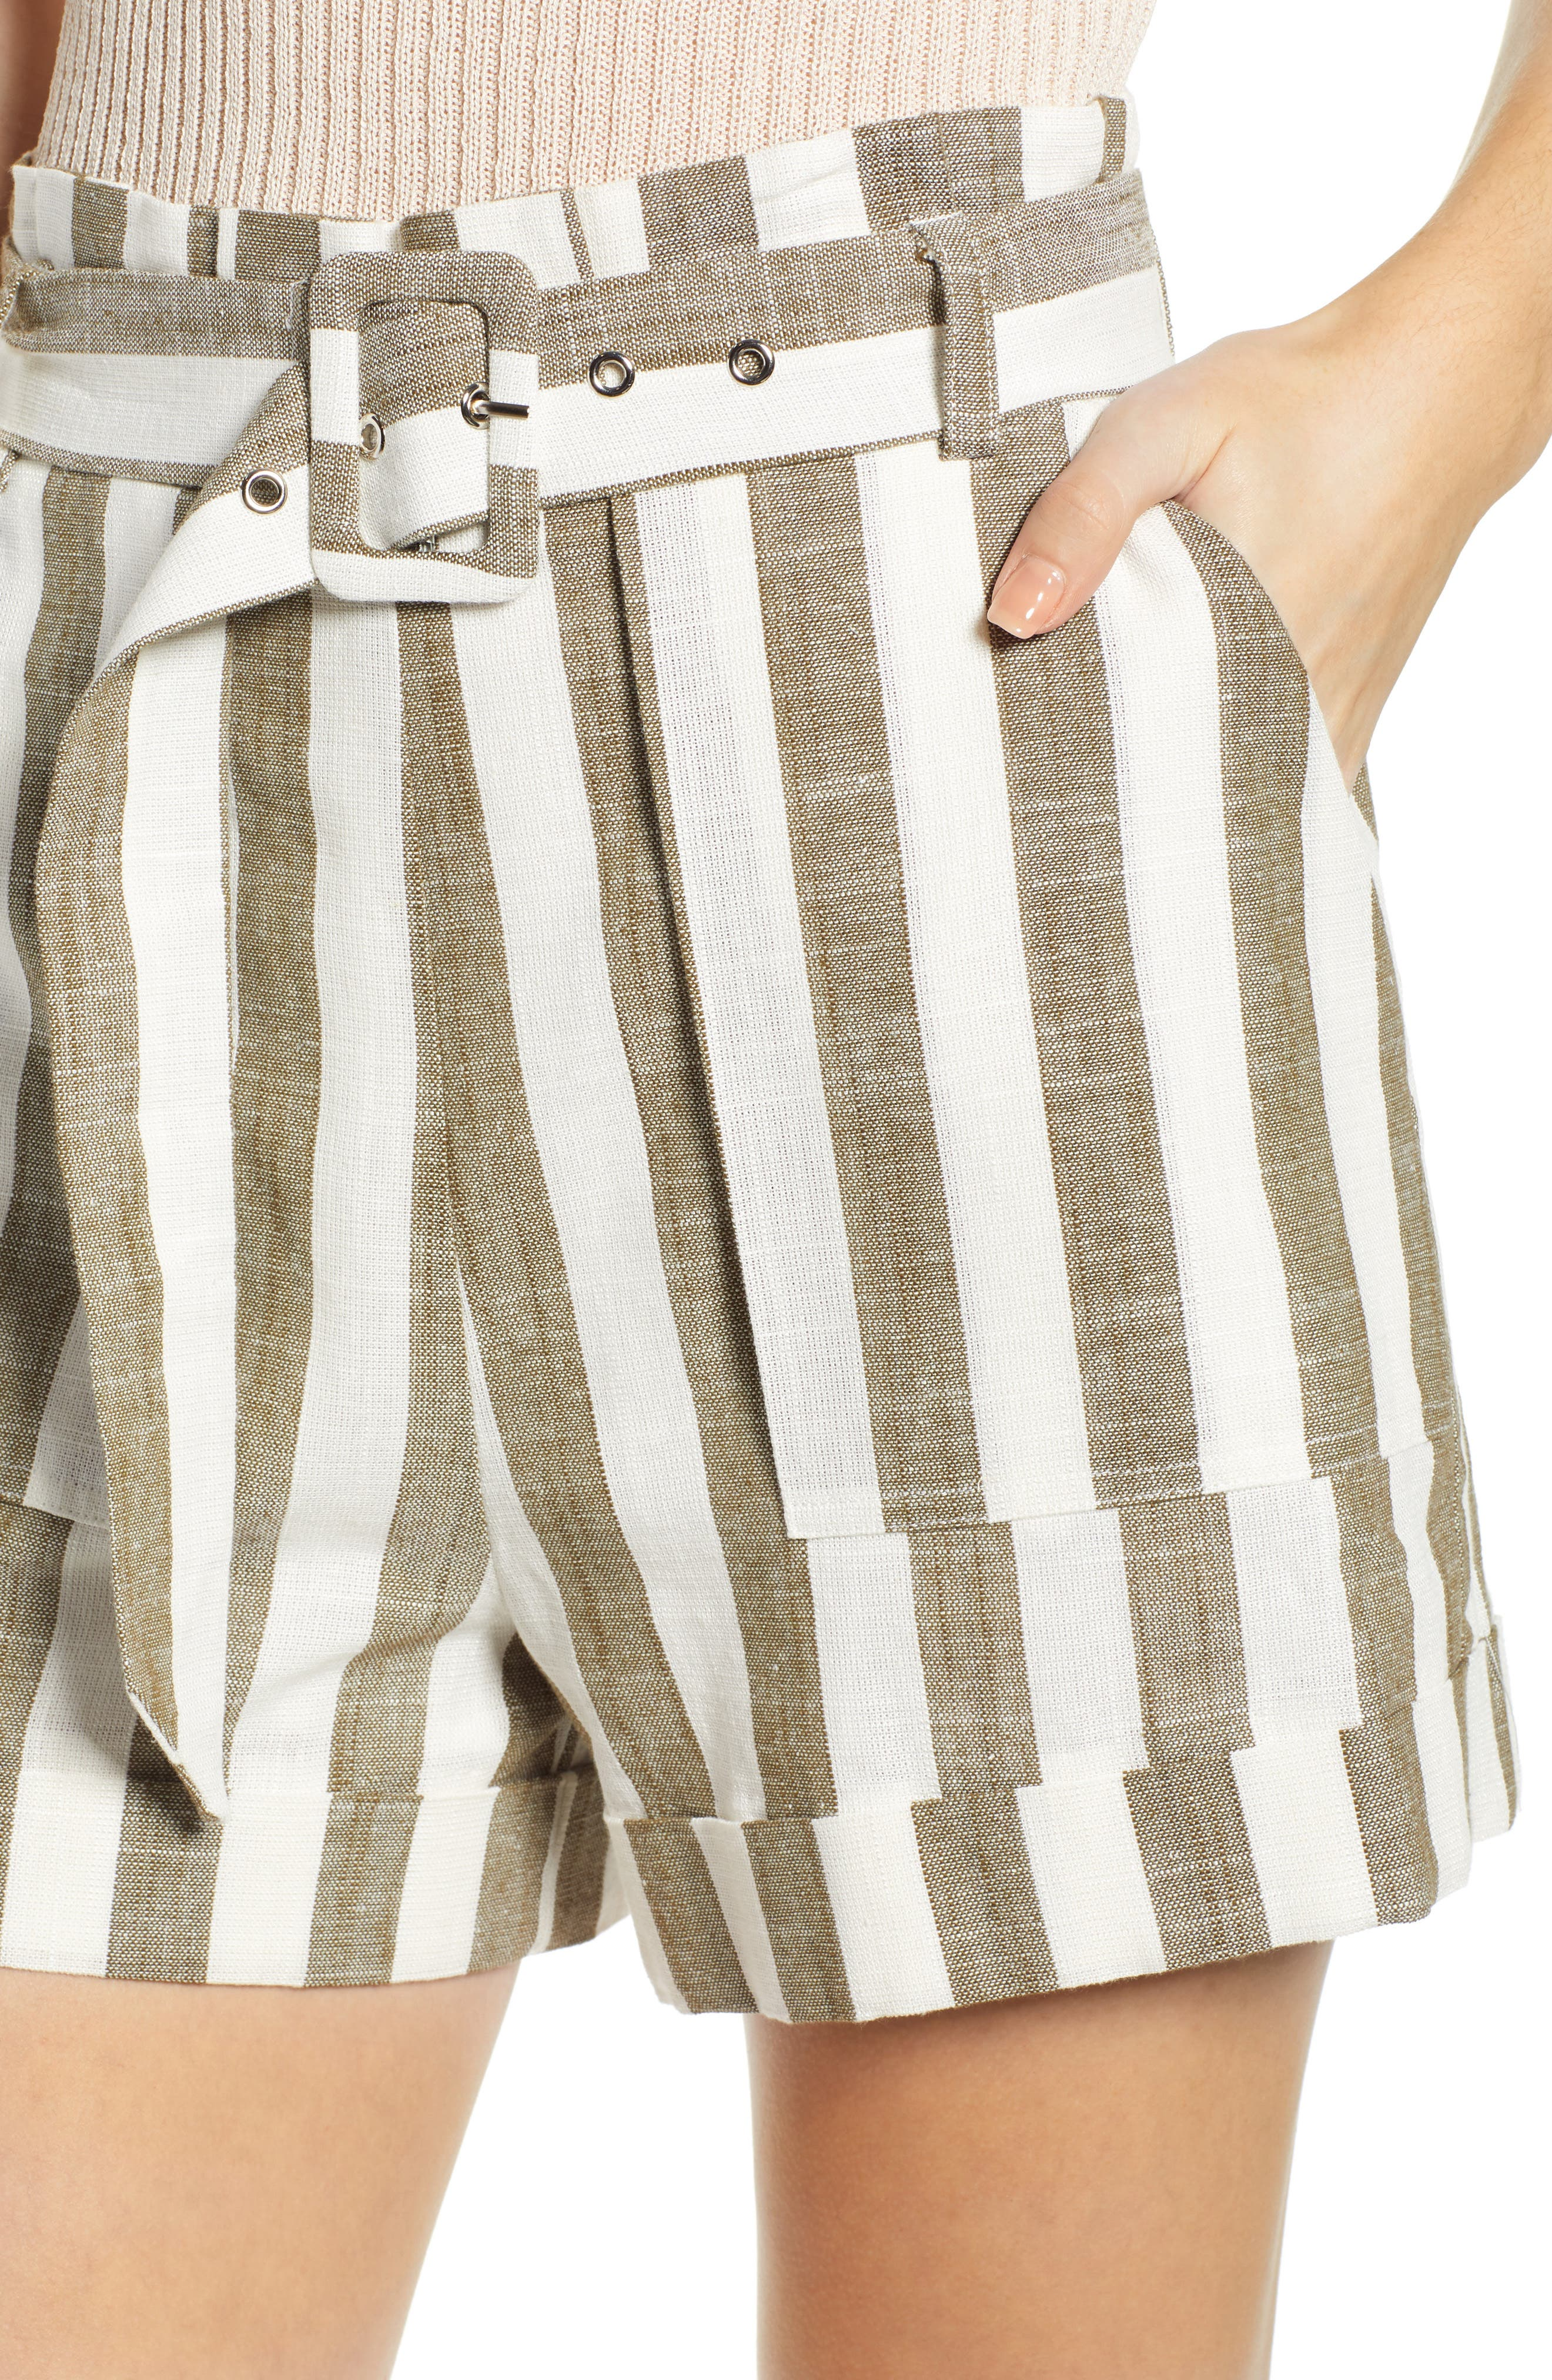 CHRISELLE LIM COLLECTION, Chriselle Lim Cherie Shorts, Alternate thumbnail 4, color, OLIVE STRIPE